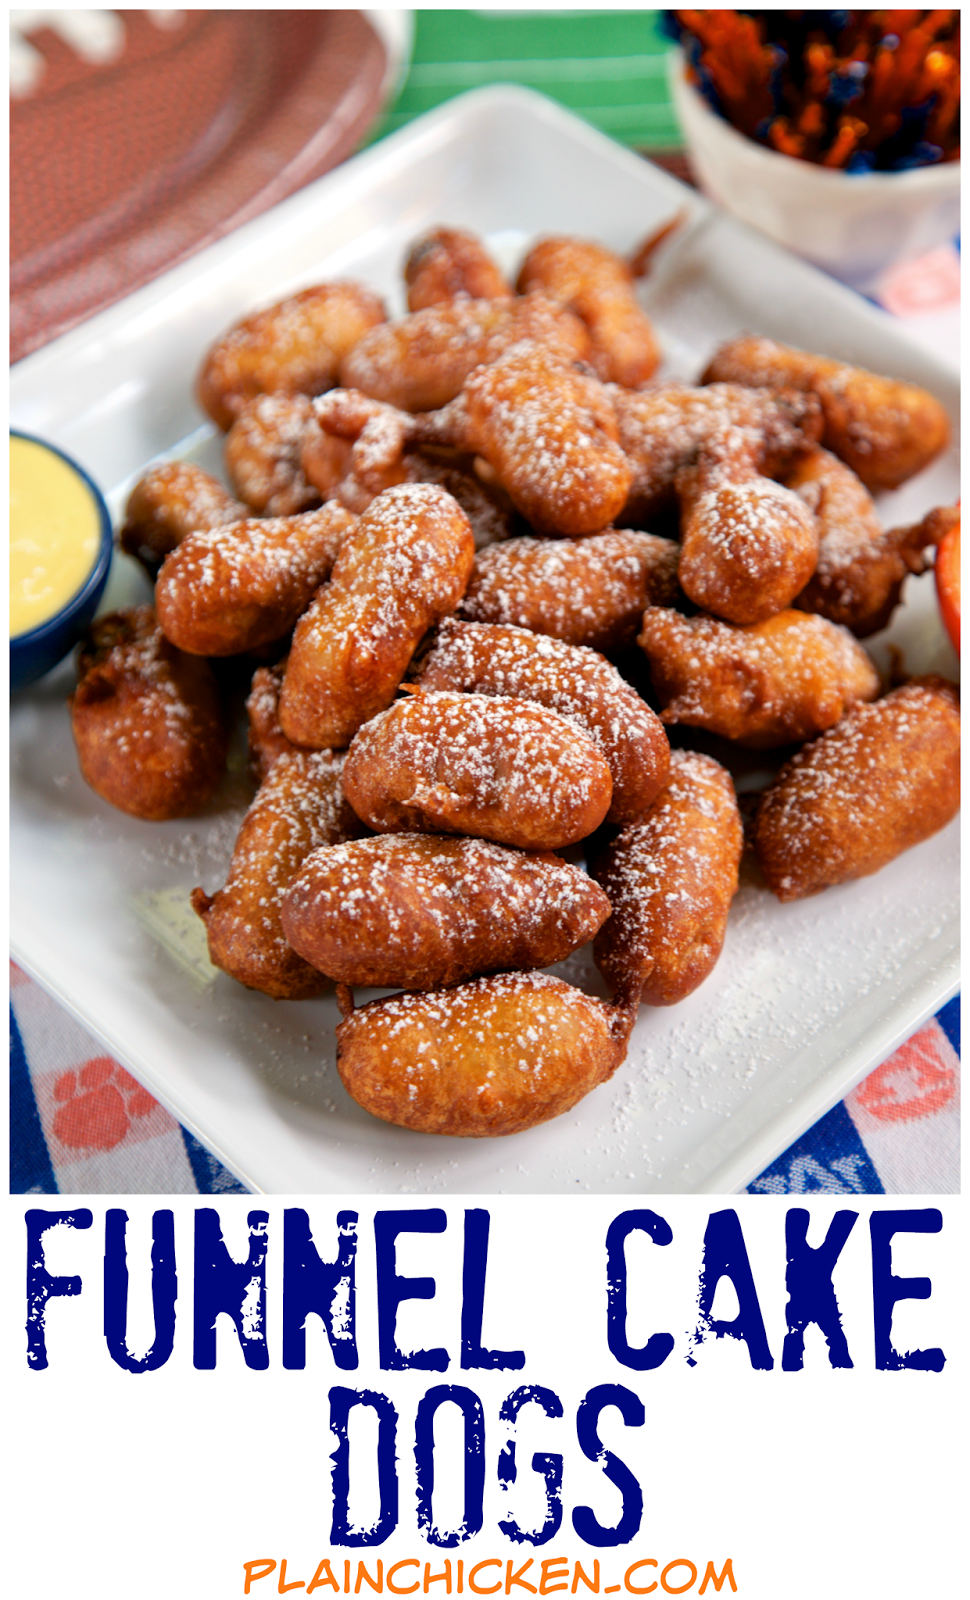 Funnel Cake Dogs Recipe - great for tailgating!! Little Smokies battered and fried. Dip in honey mustard or plain honey. Fun twist on our usual pigs in a blanket. Great party food and tailgating food!